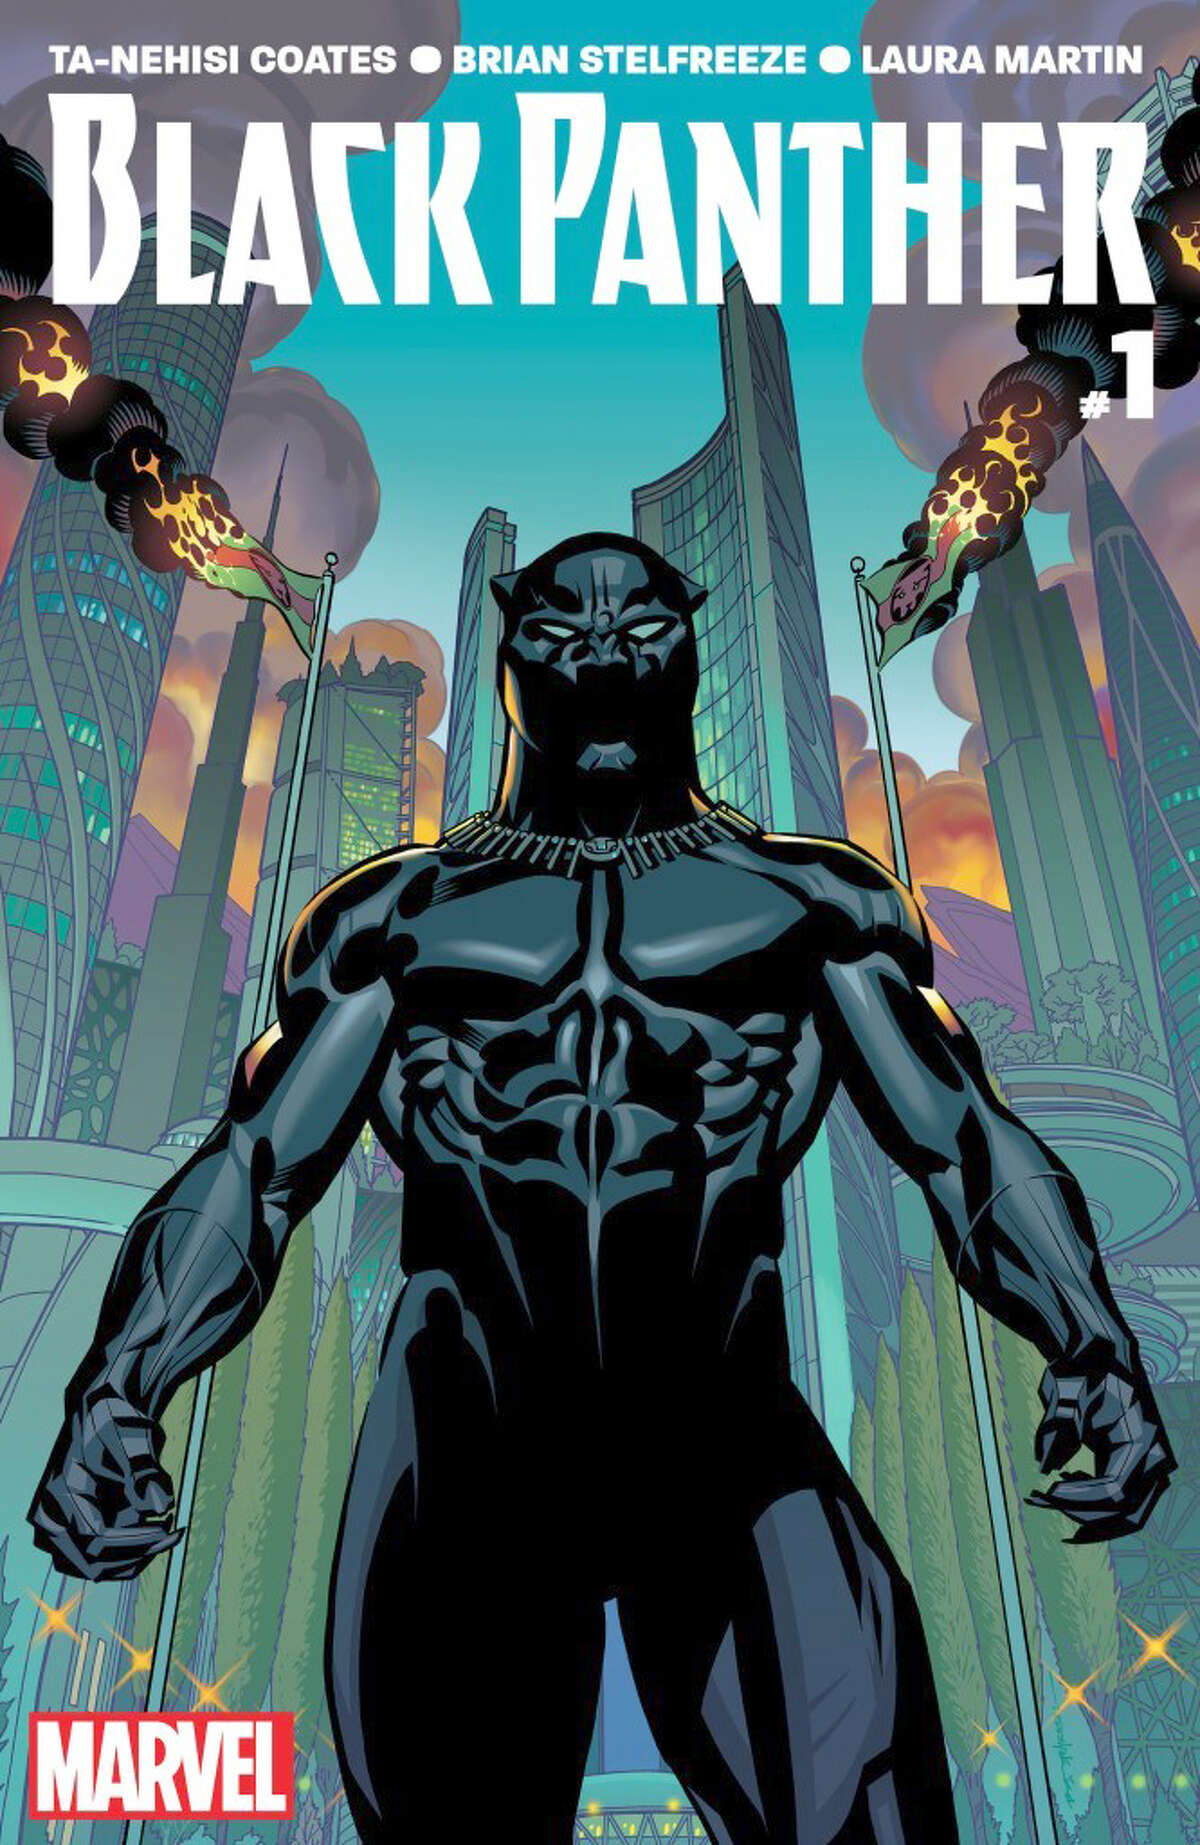 Black Panther #1 The cover. Written by Ta-Nehisi Coates with art by Brian Stelfreeze.